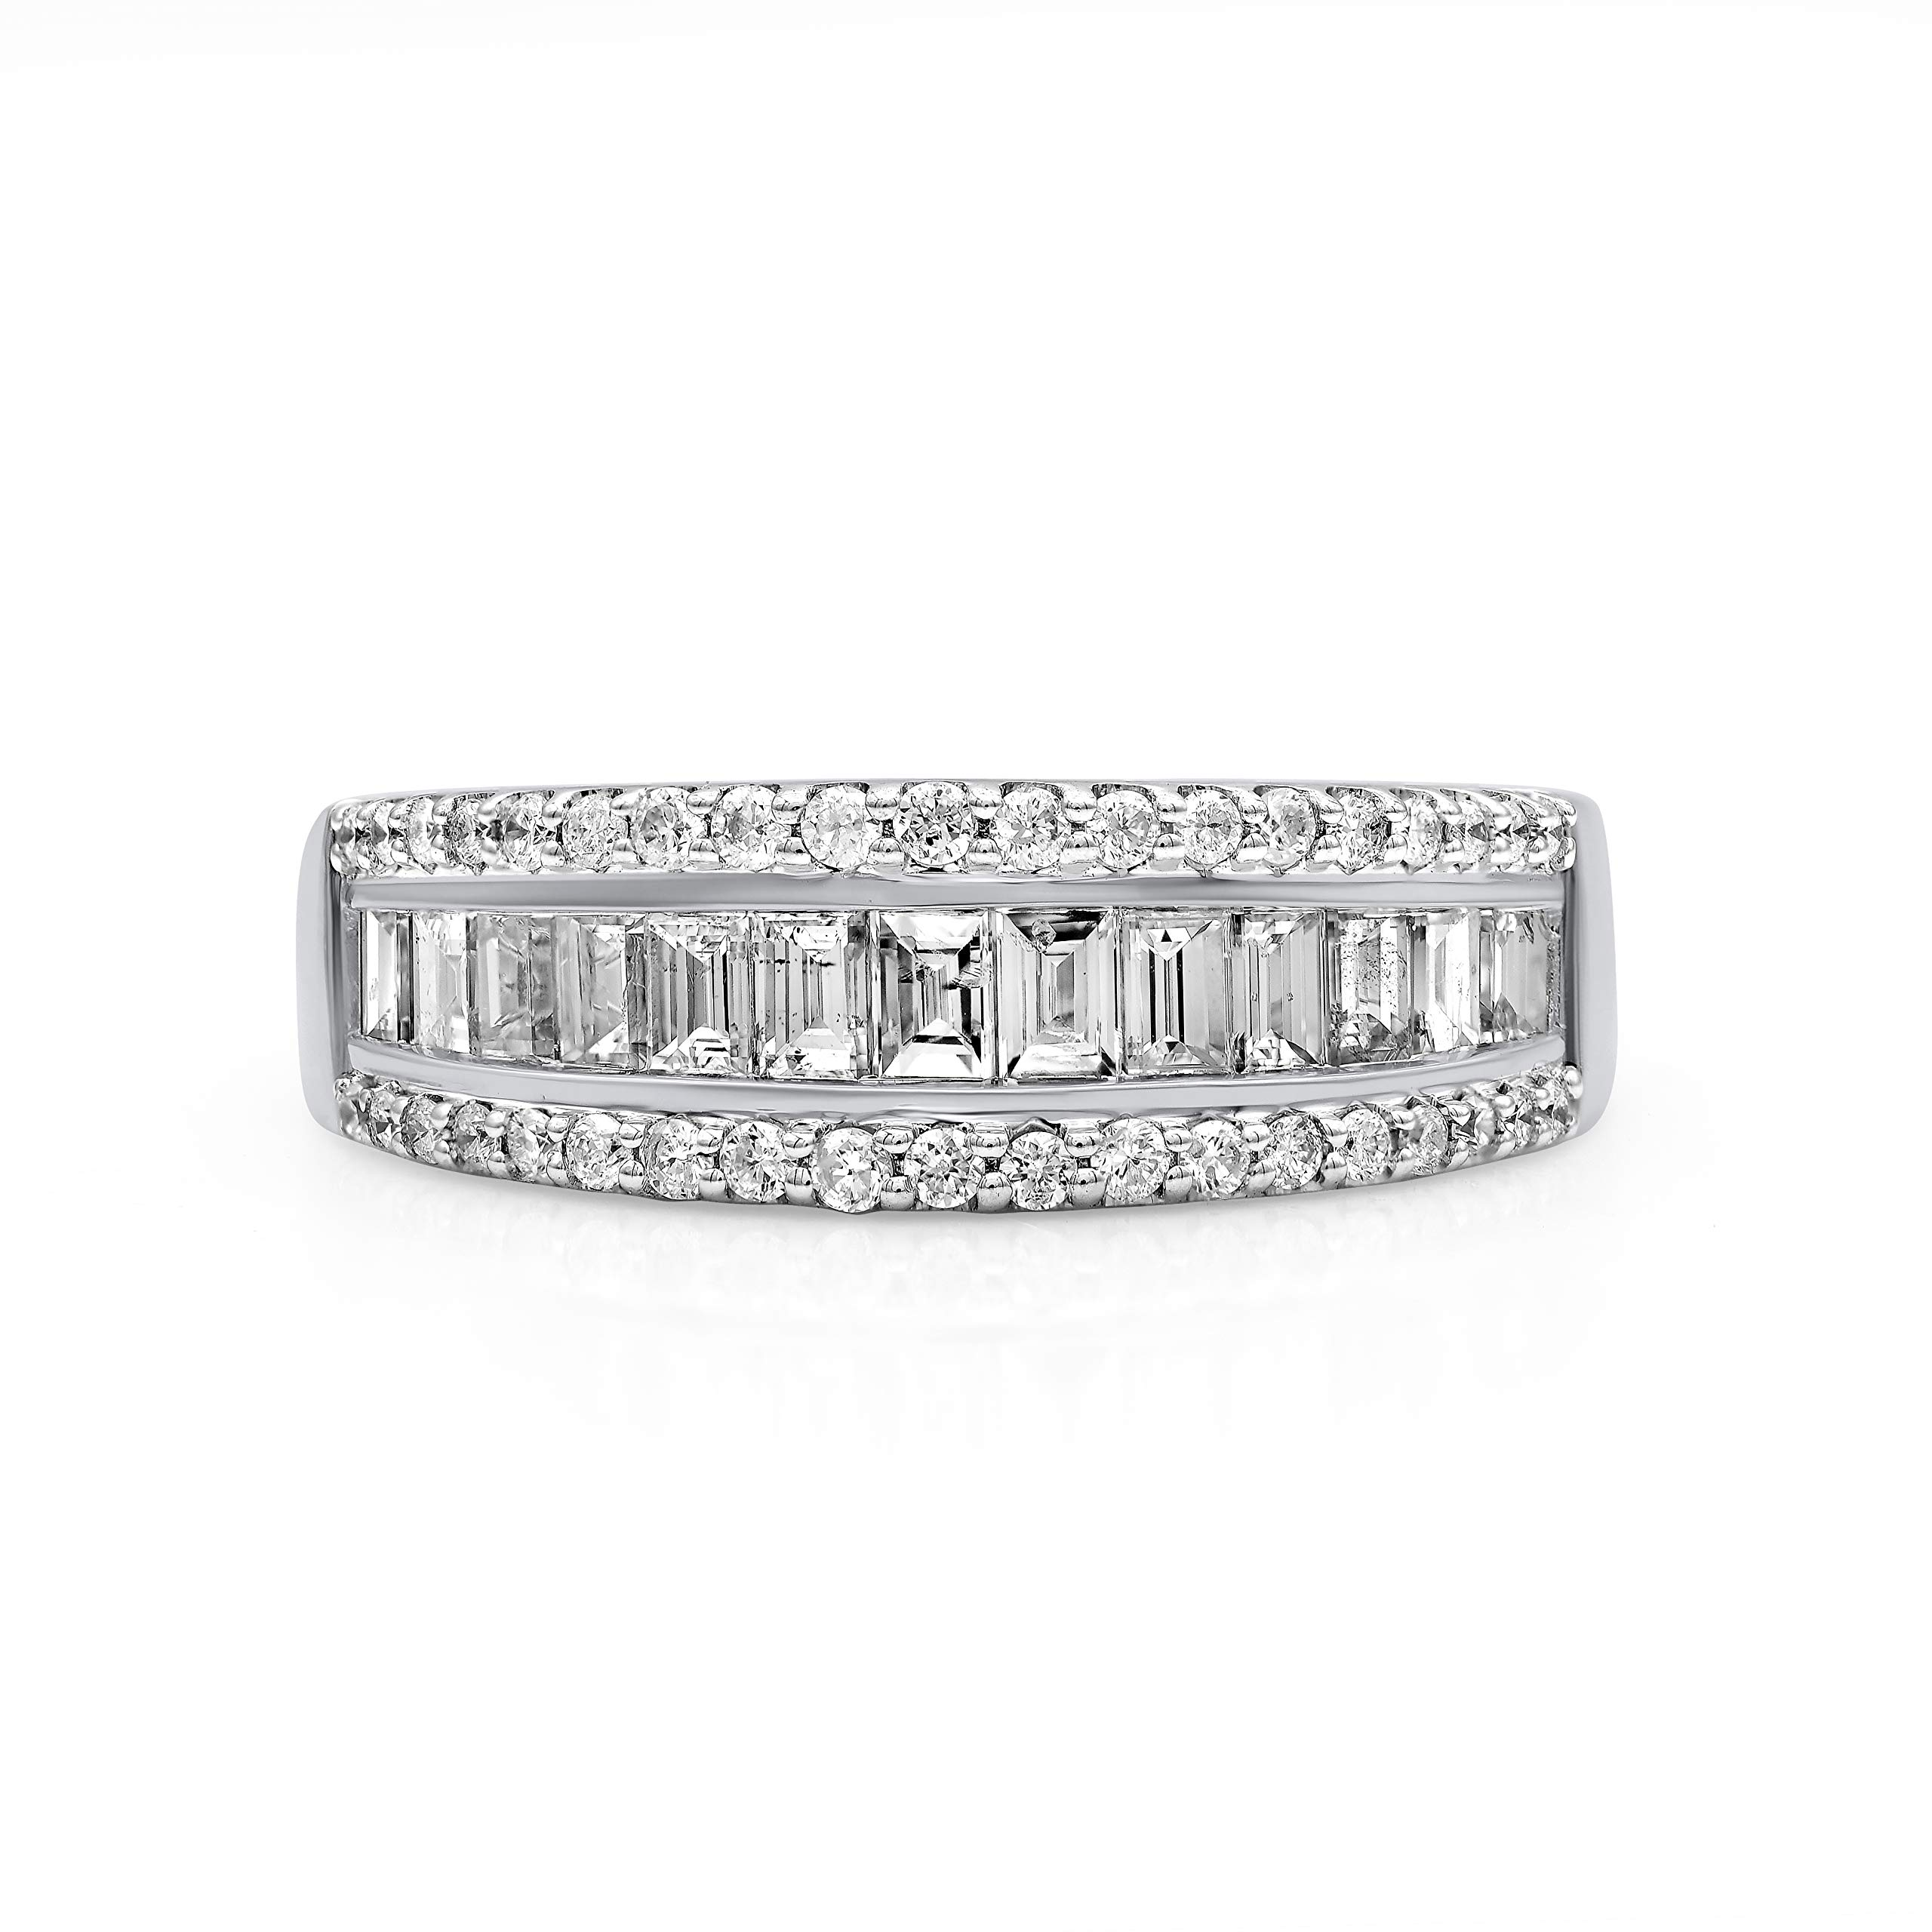 TJD 10K White Gold 1.00 Carat Round-Shape (H-I Color, I2 Clarity) and Baguette-Shape (G-H Color, I1-I2 Clarity) Gorgeous Diamond Band for Women, US Size 6